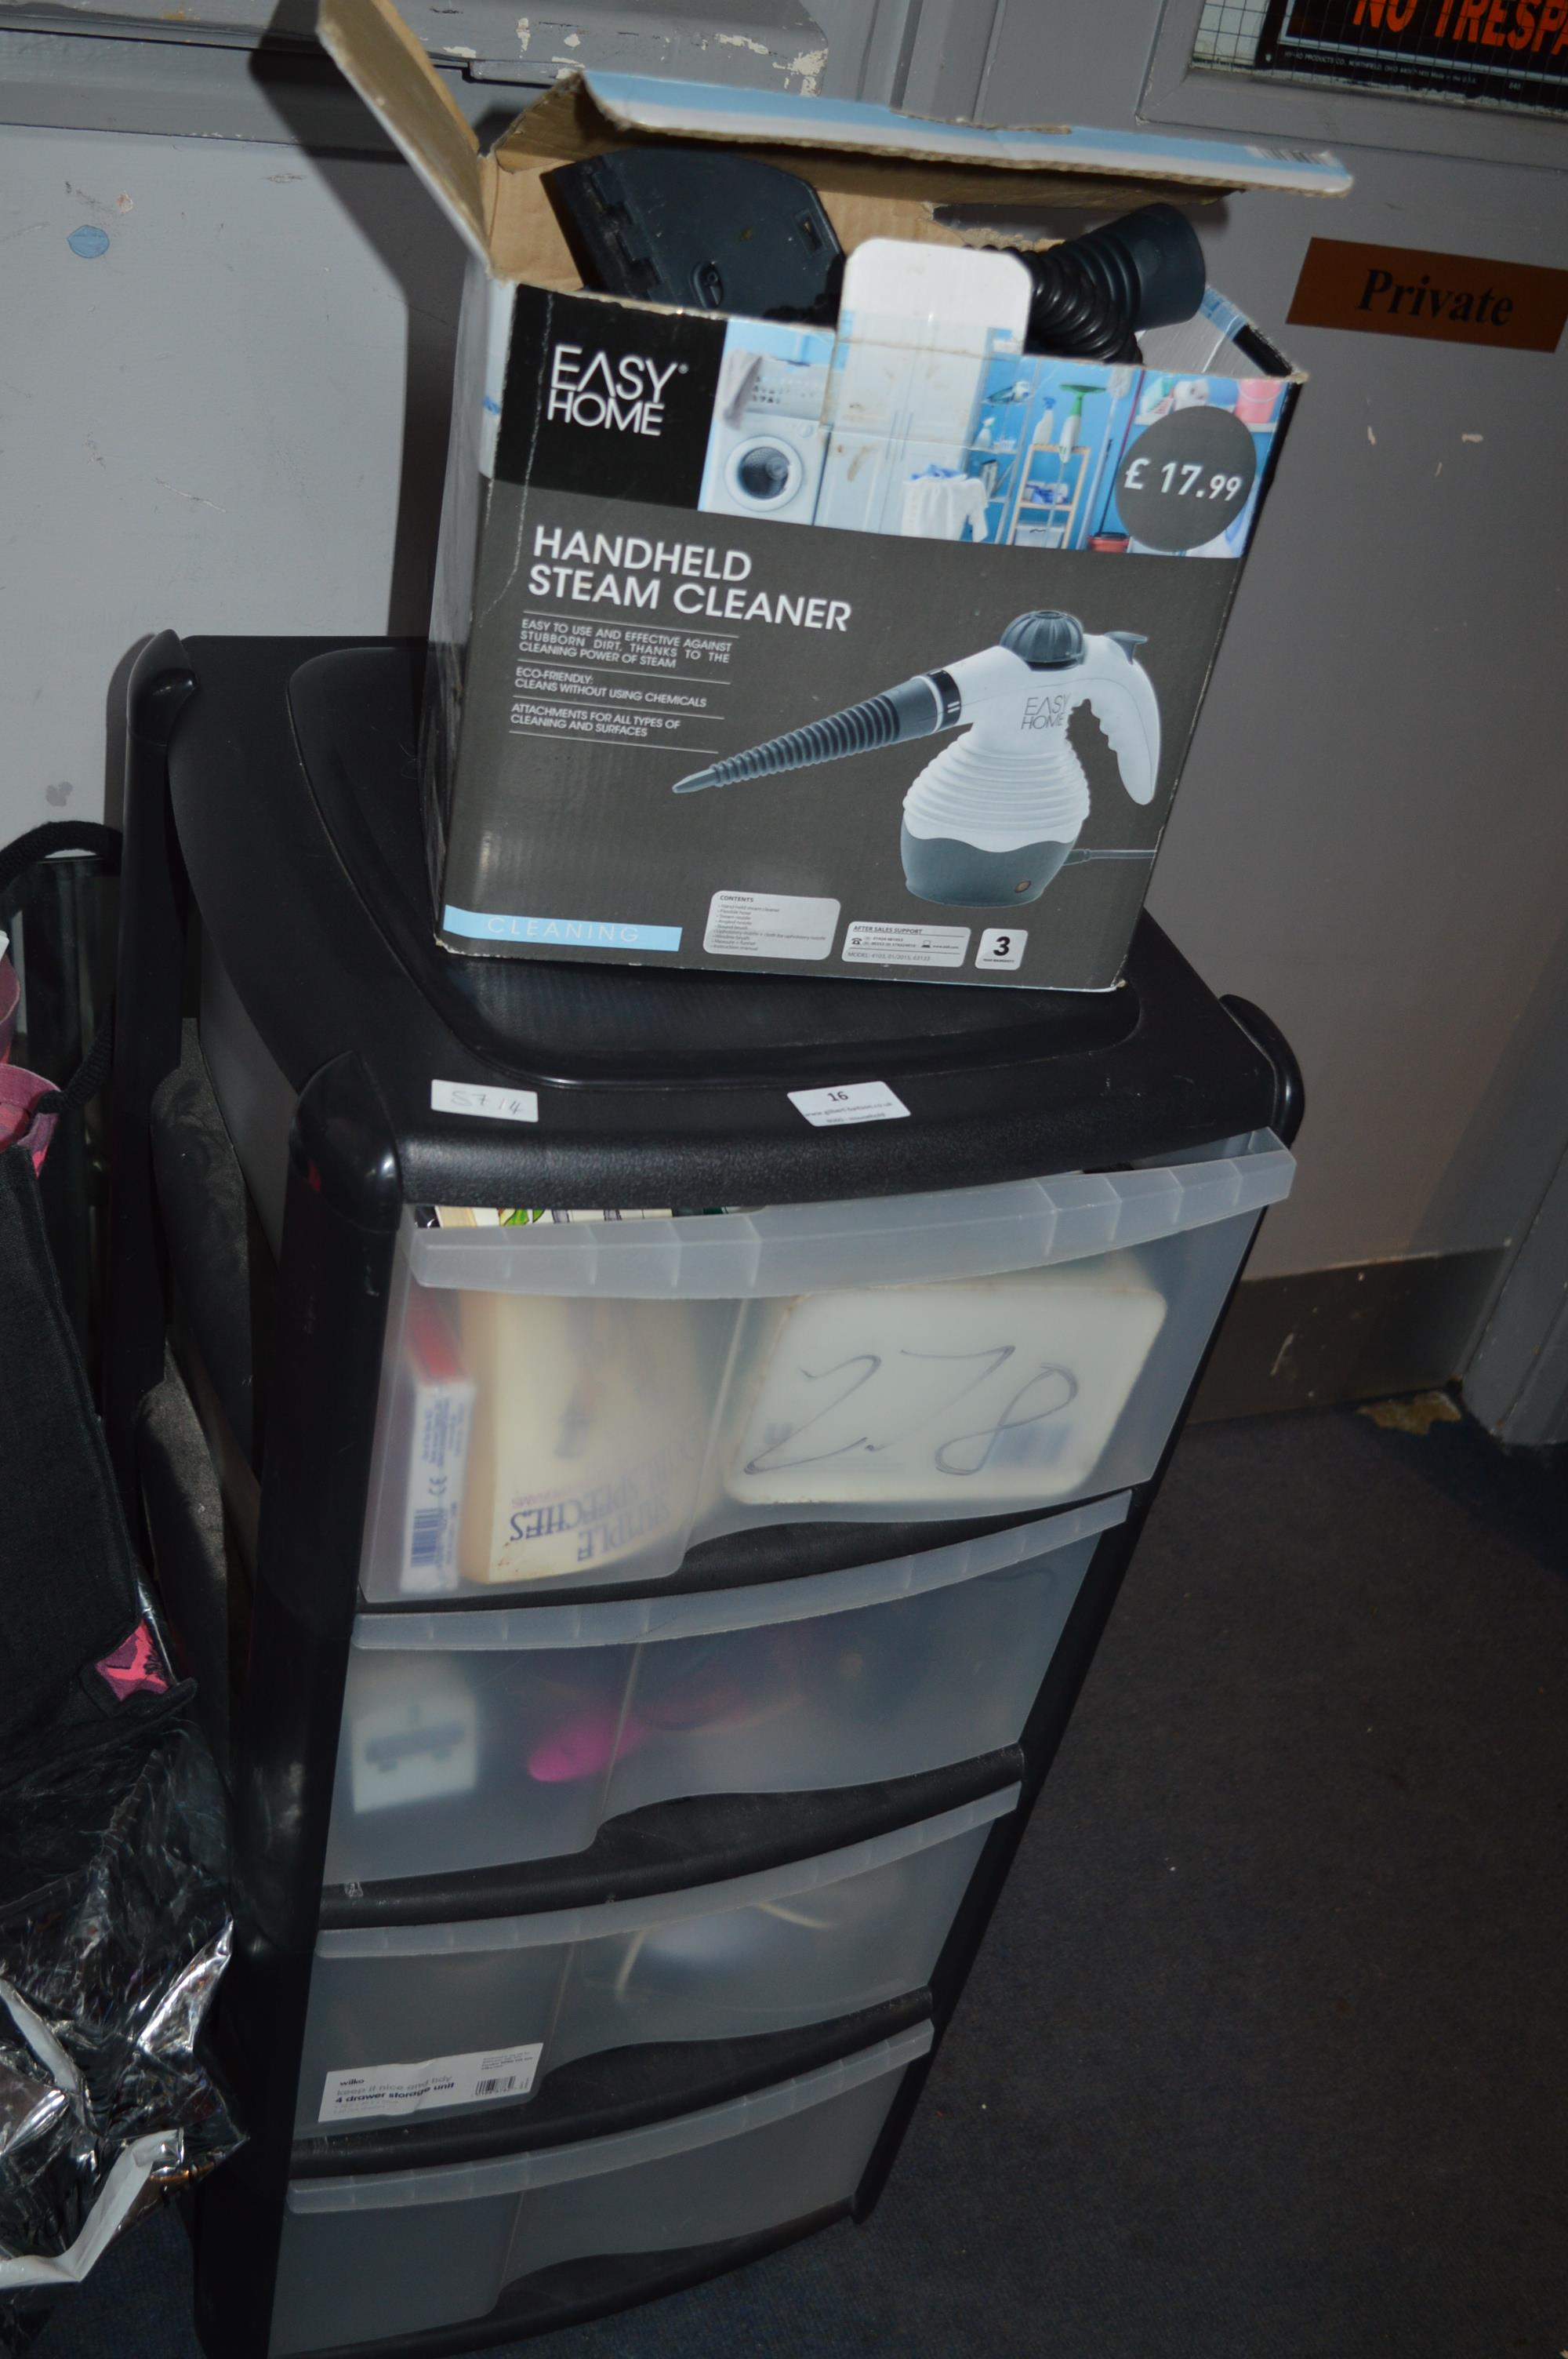 Lot 16 - Four Drawer Plastic Unit Containing Household Items, Hand Steam Cleaner, etc.